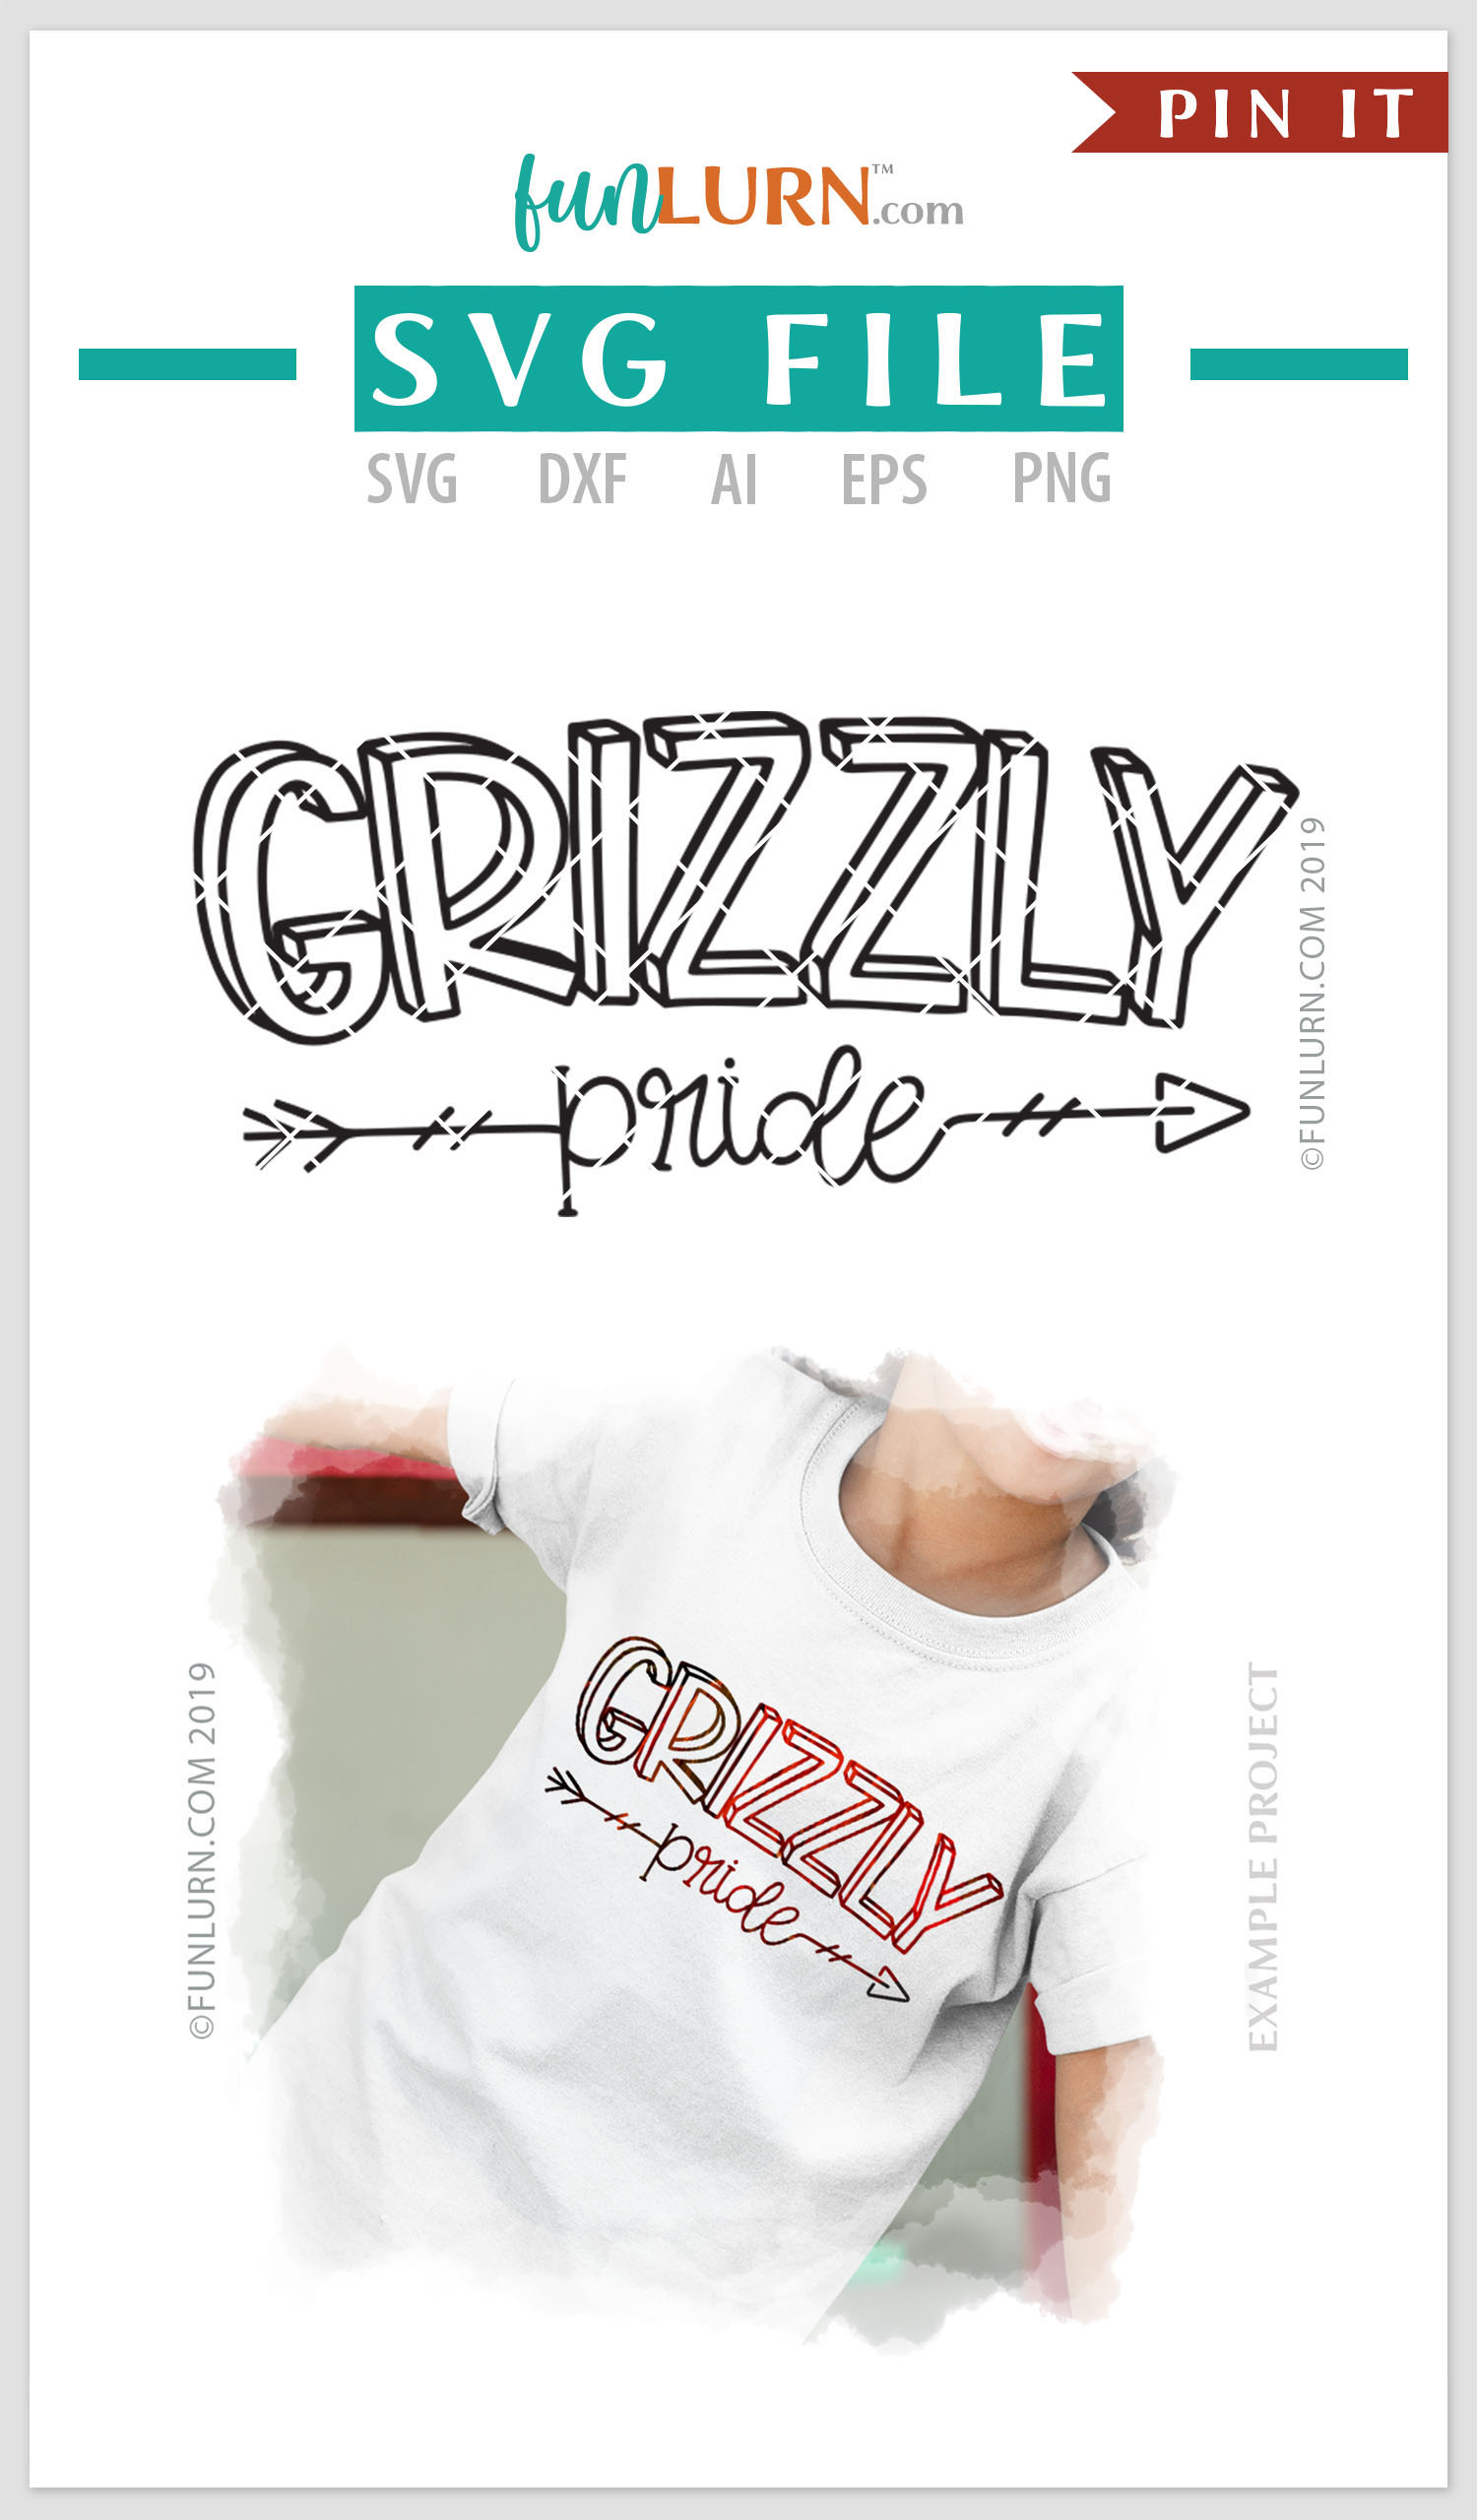 Grizzly Pride Team SVG Cut File example image 4